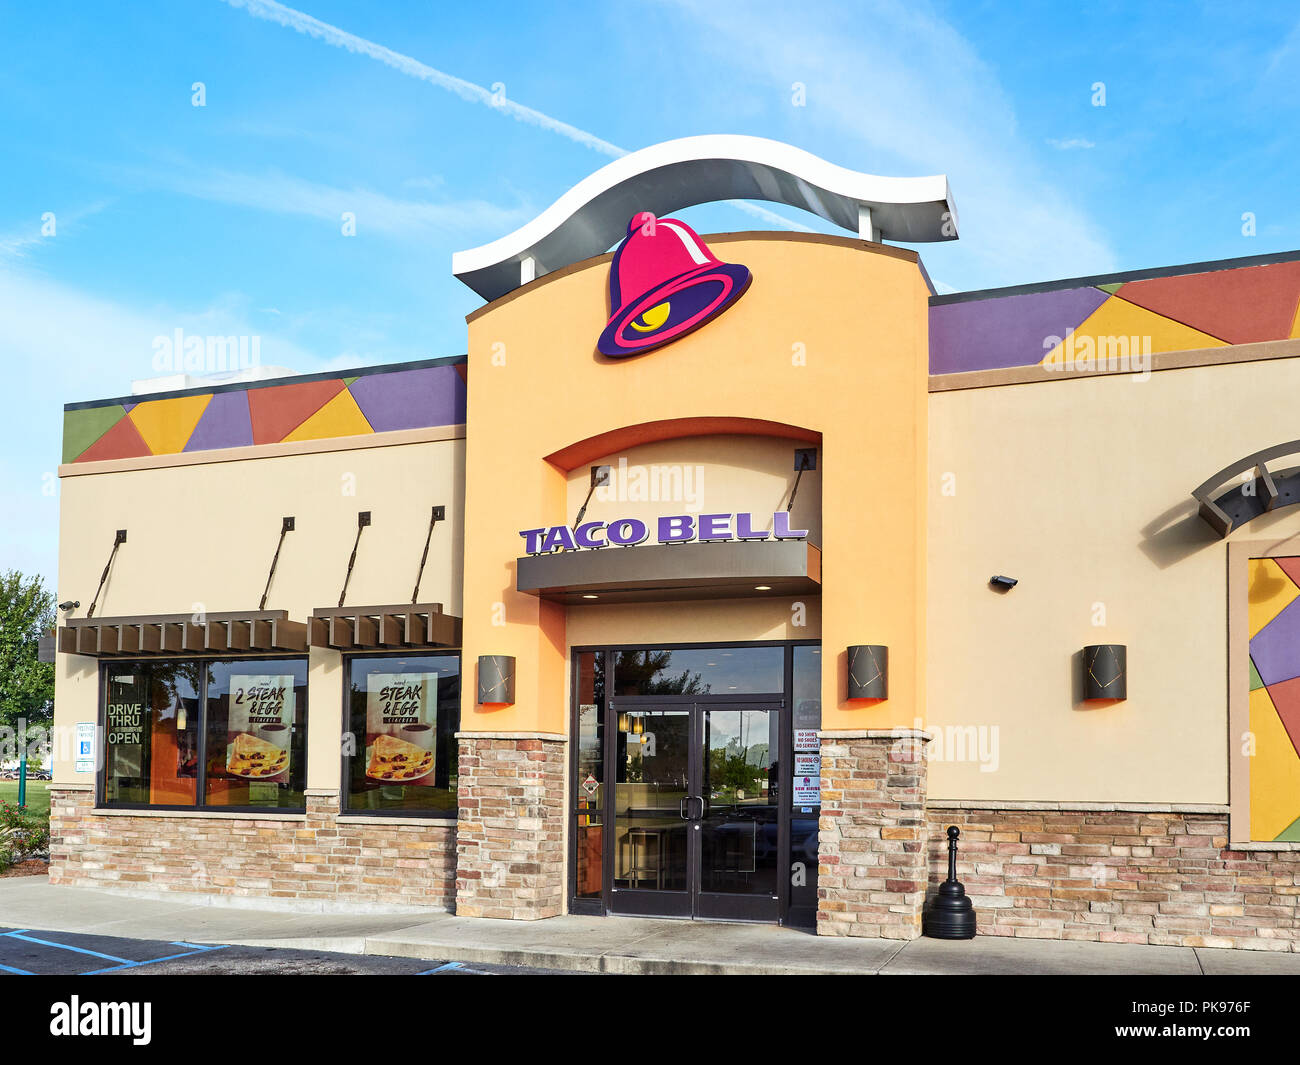 Taco Bell Exterior Stock Photos Taco Bell Exterior Stock Images